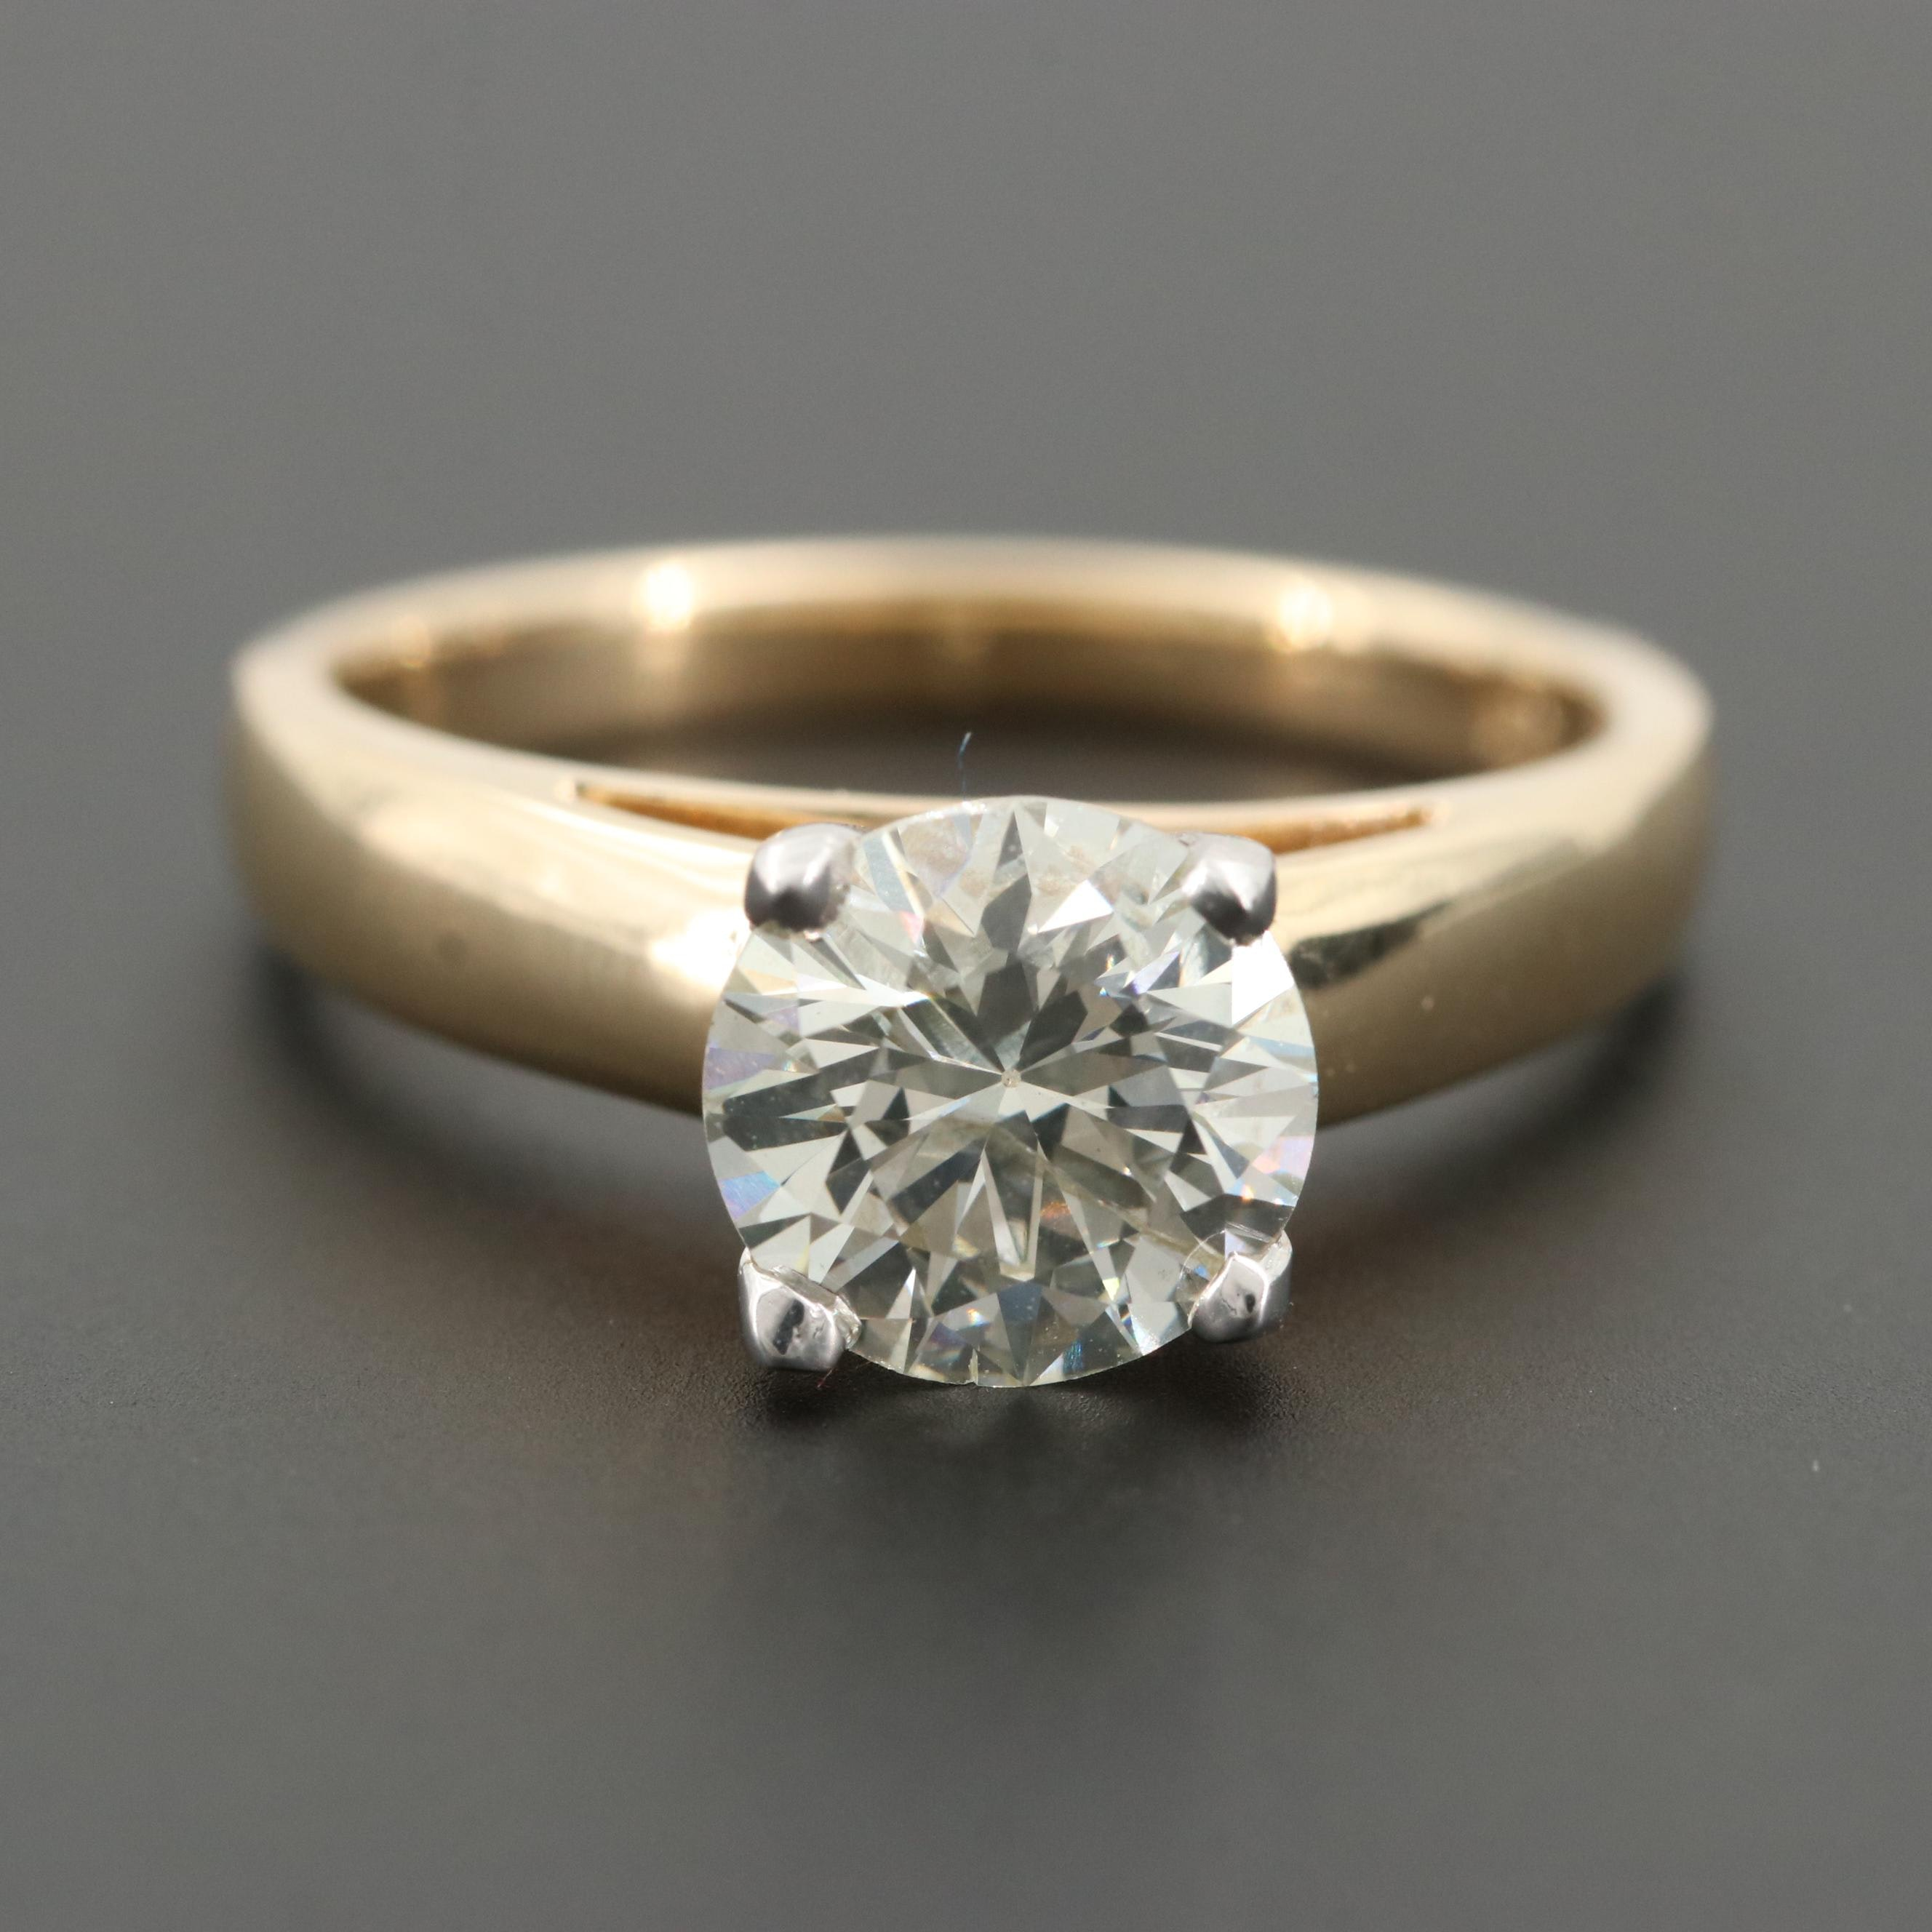 14K Yellow Gold 1.84 CT Diamond Ring with White Gold Head